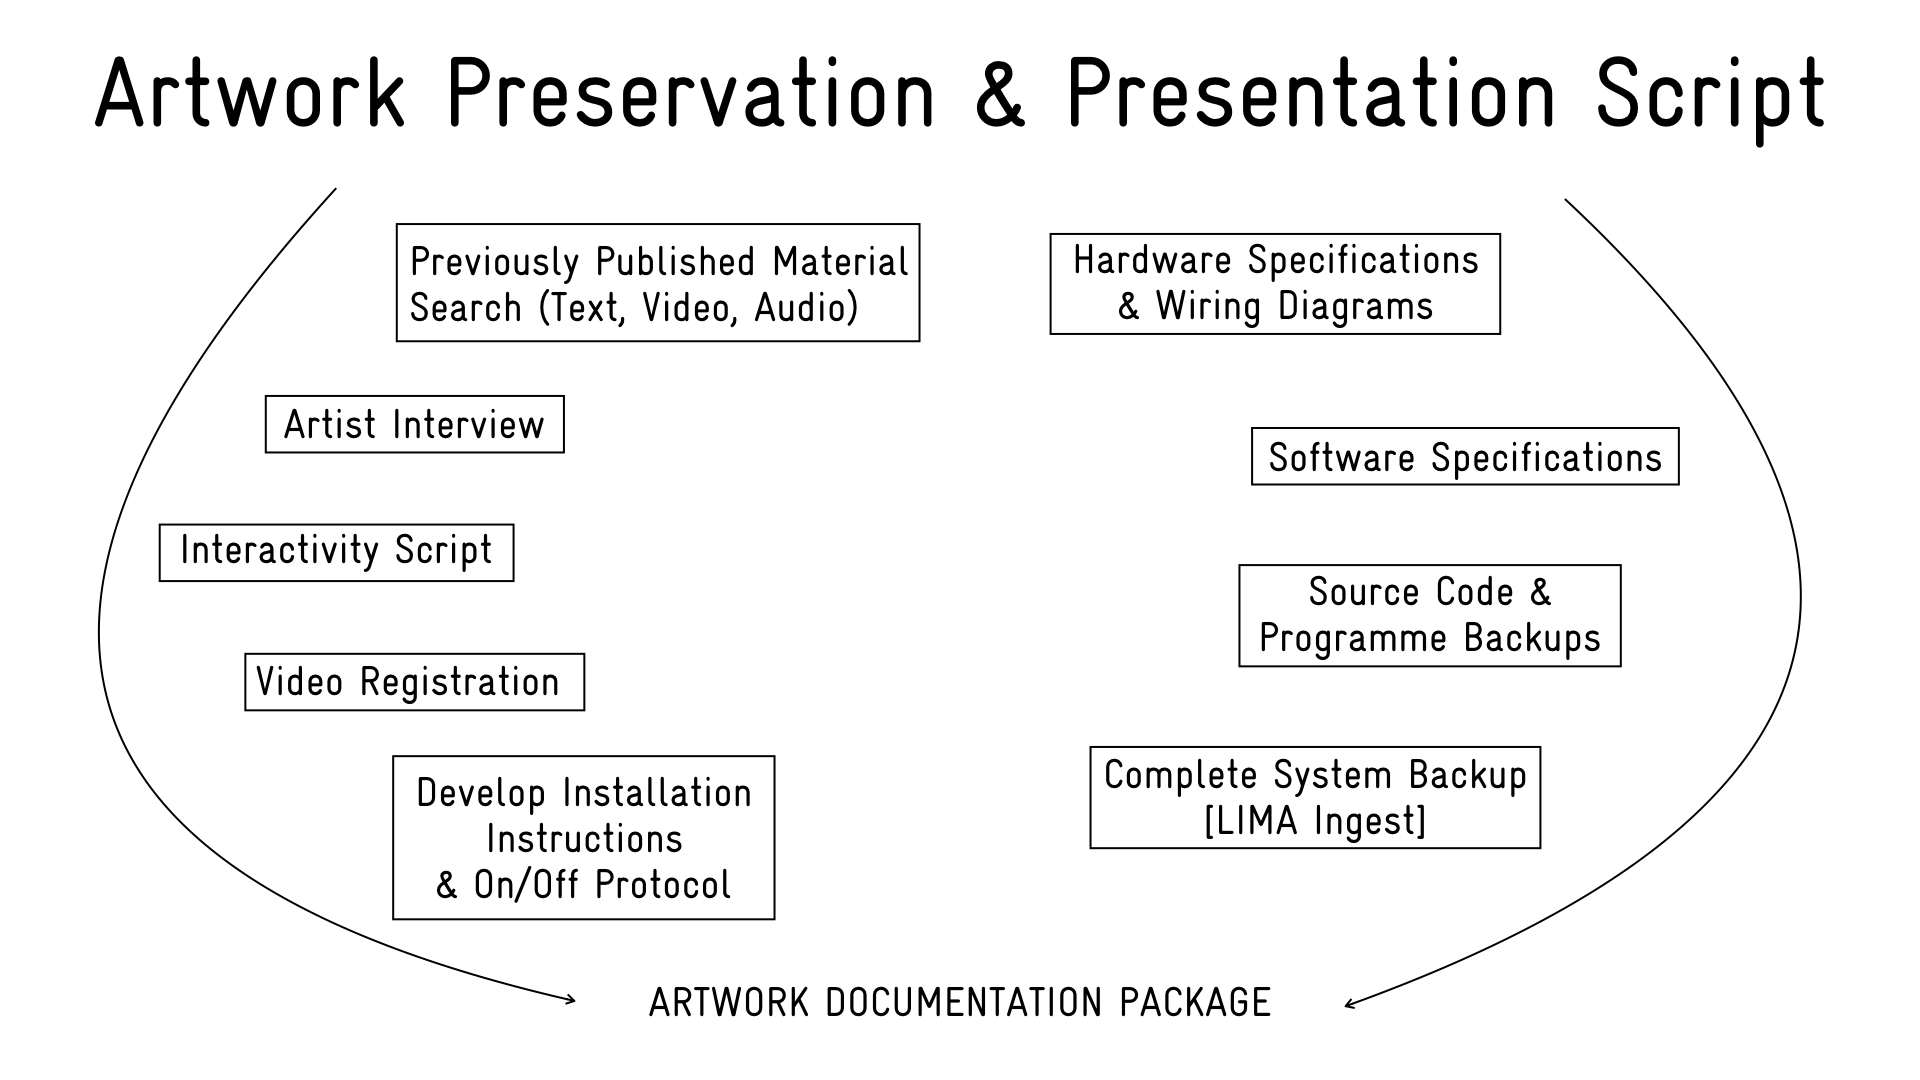 Future Proof Media Art Conclusions Wiring Diagram The Artwork Documentation Package Model Shown In Includes A Series Of Activities And Their Resulting Materials That Together Form Complete